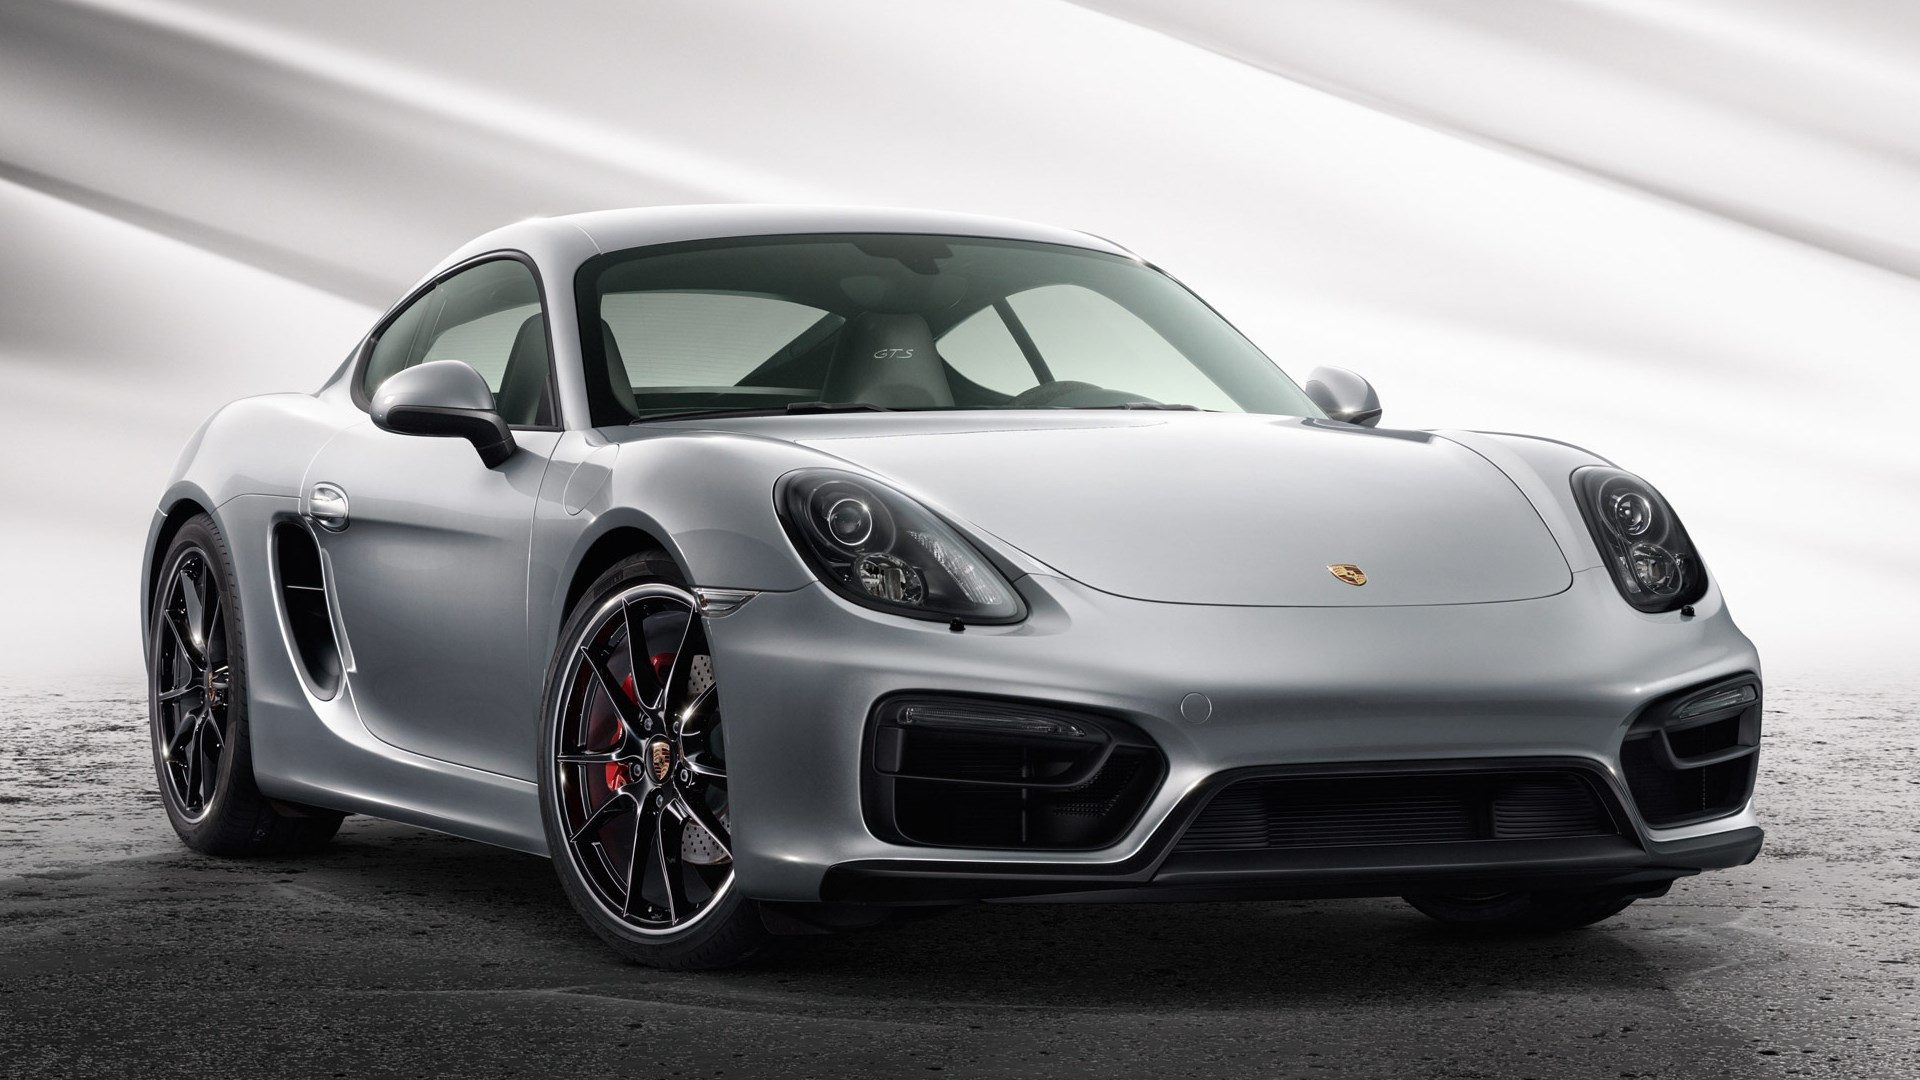 1920x1080-desktop-porsche-cayman-gts-wallpaper-wpc580978